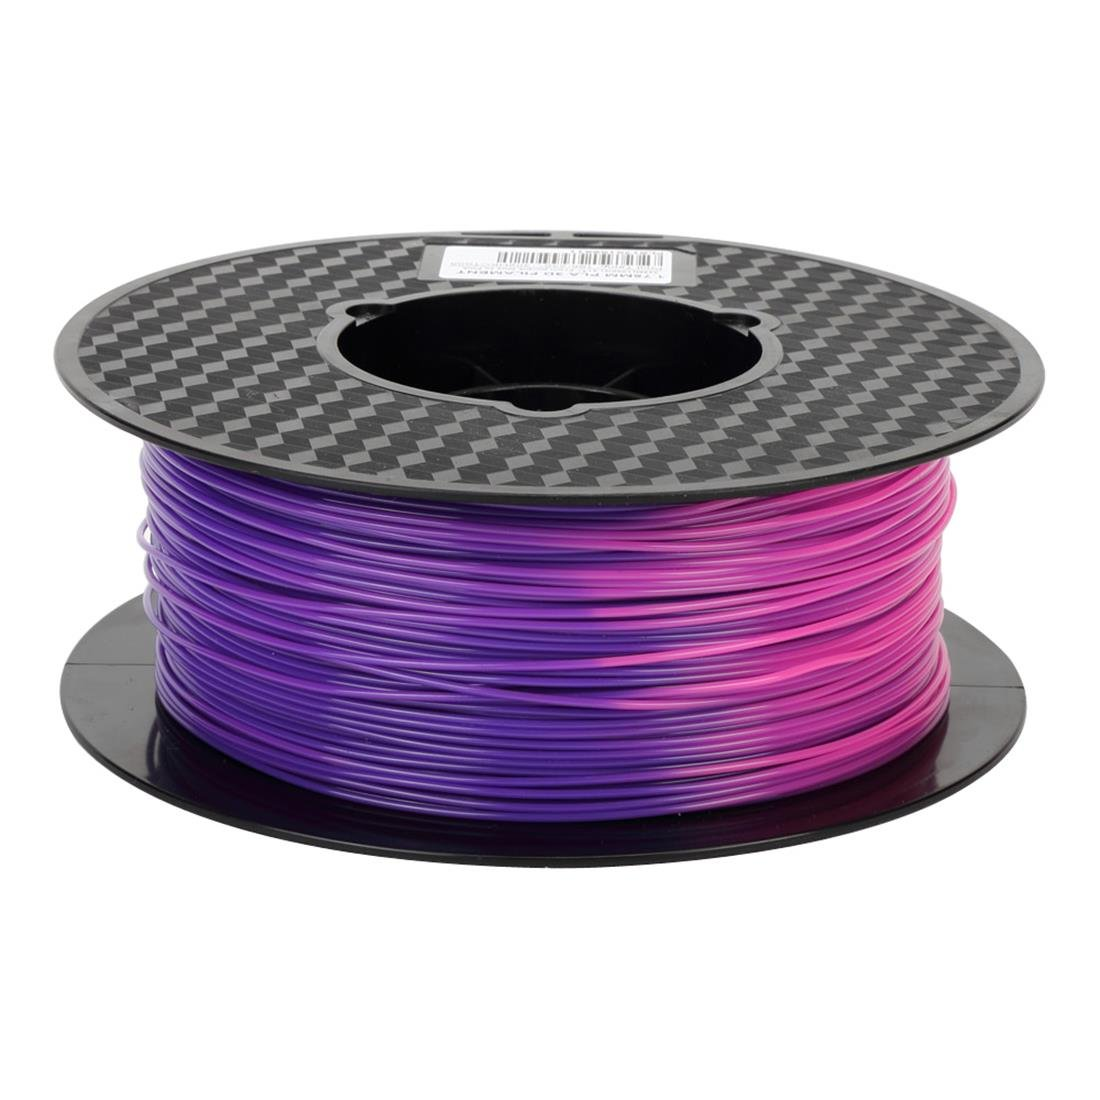 Uniqstore Color Changing with Temperature 3D Printer PLA Filament,From Purple Blue to Pink,1.75 mm, Dimensional Accuracy +/- 0.05 mm, 1KG Spool(2.2LBS), 3D Printing PLA Material